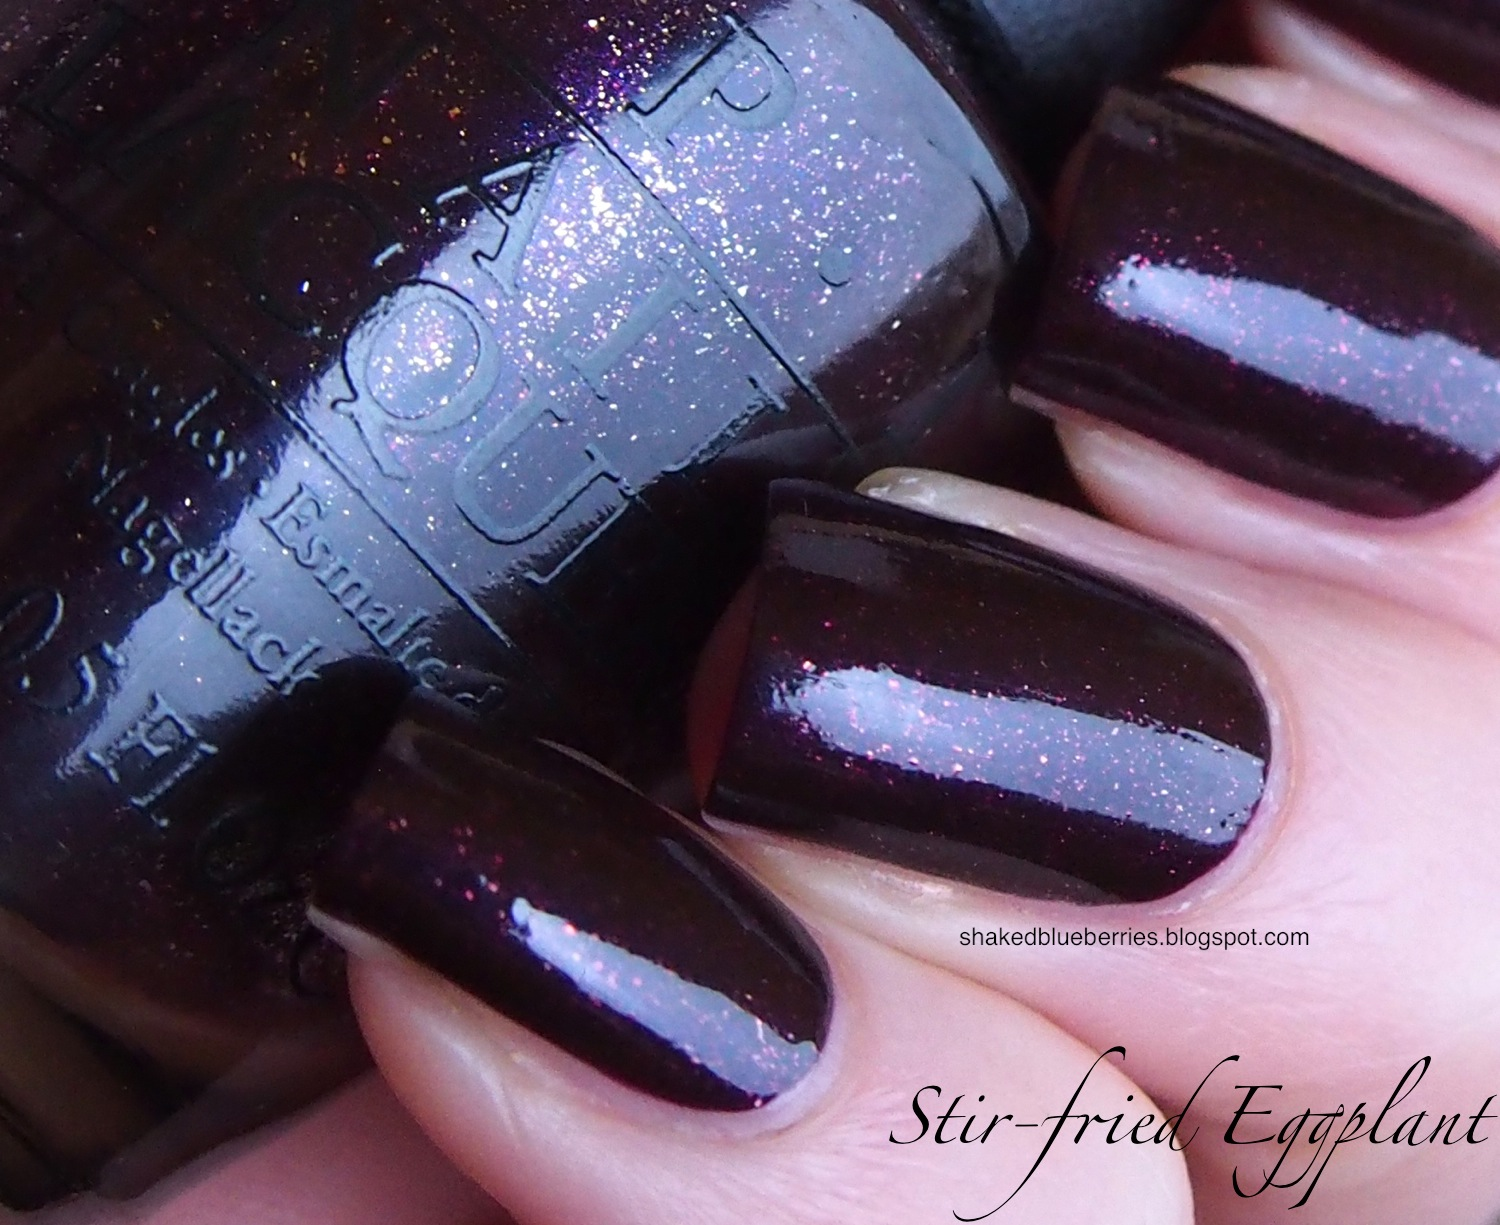 OPI_stirfried_eggplant_3